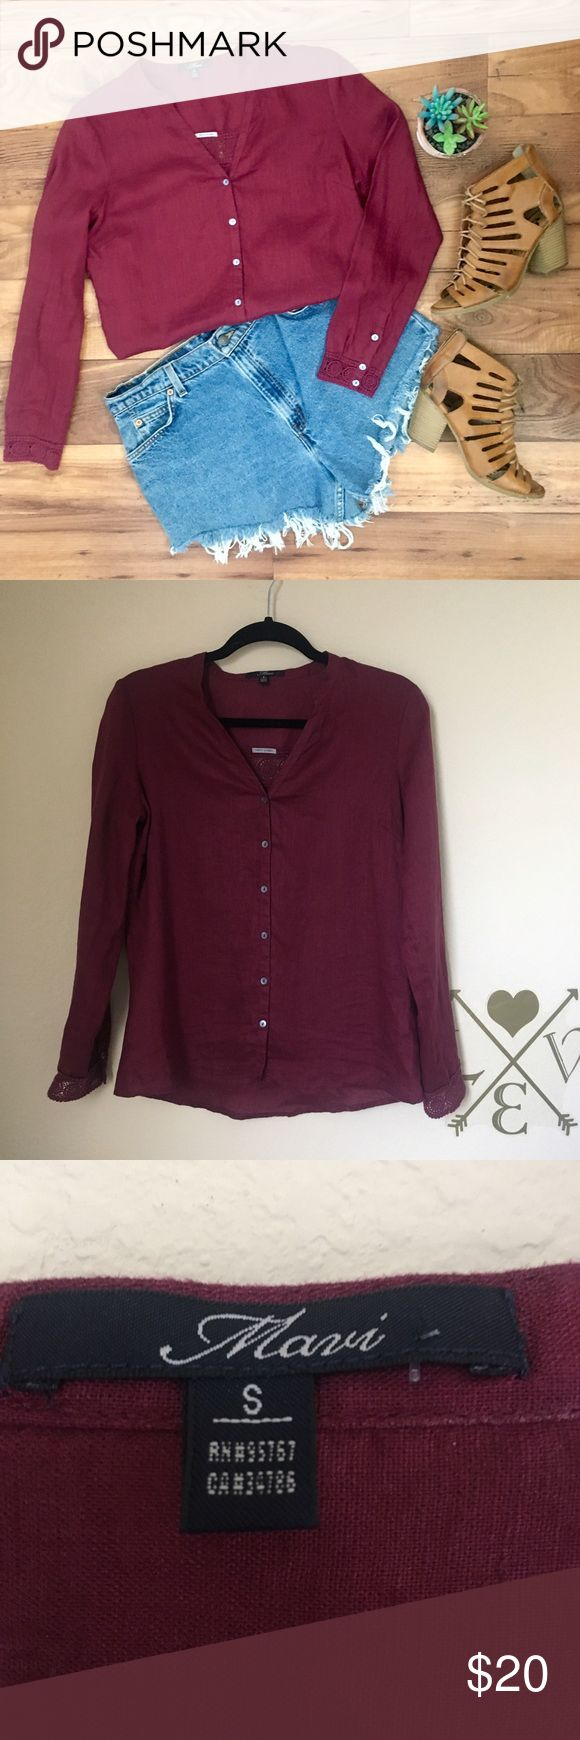 Burgundy linen top by mavi NWOT Perfect summer top made with a breathable and light weight fabric. 100% linen. In excellent condition. Pair with jean shorts or throw over a bikini and hit the beach. Beautiful details in the crochet and buttons. Remember to bundle and save!! Mavi Tops Button Down Shirts